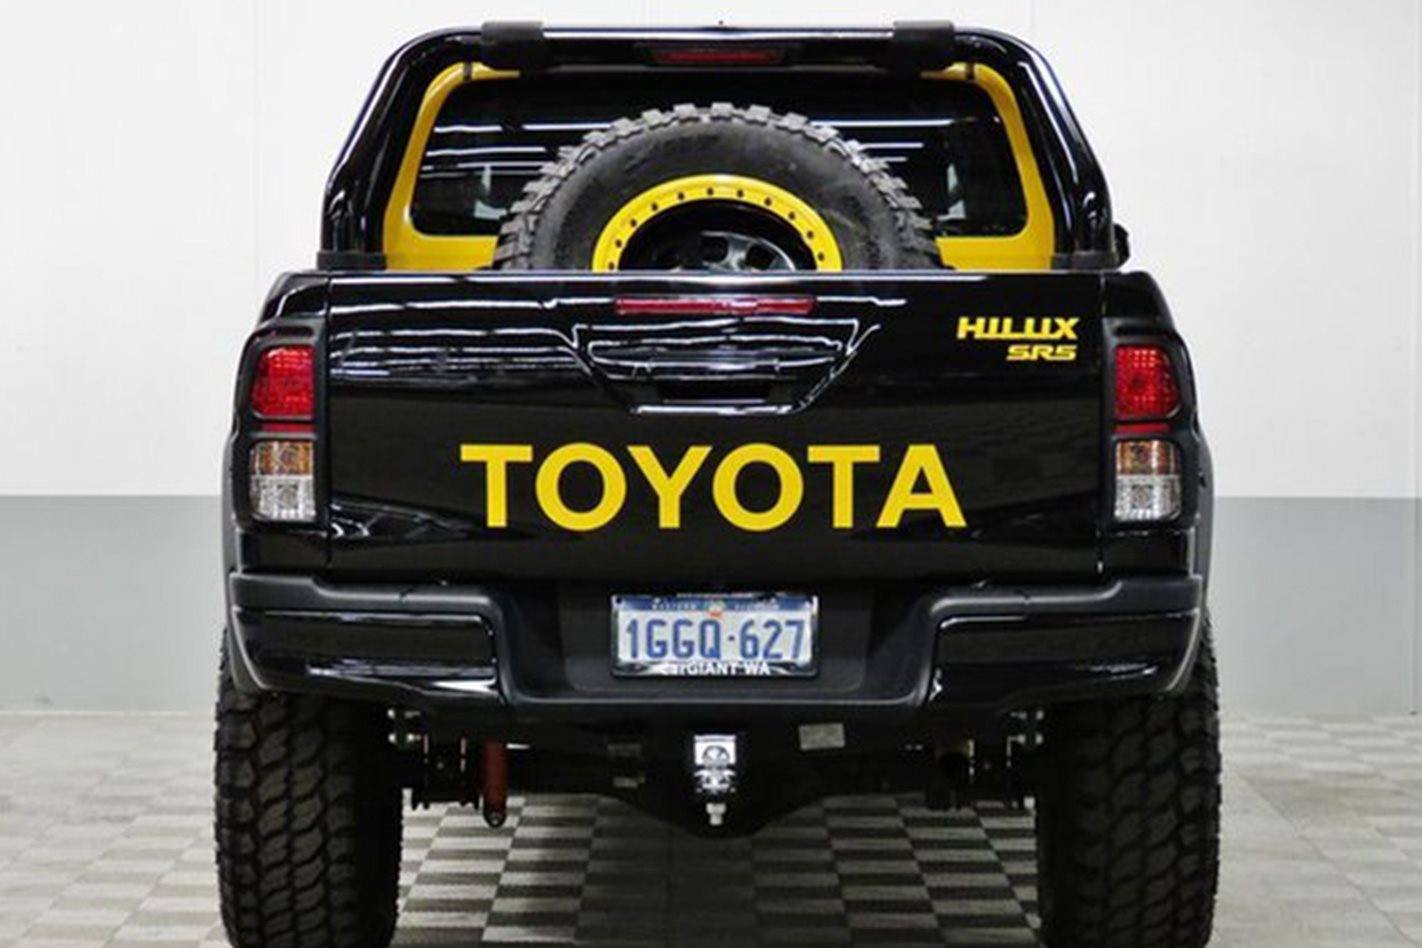 Toyota Hilux Tonka Concept Replica Is Up For Sale 4x4